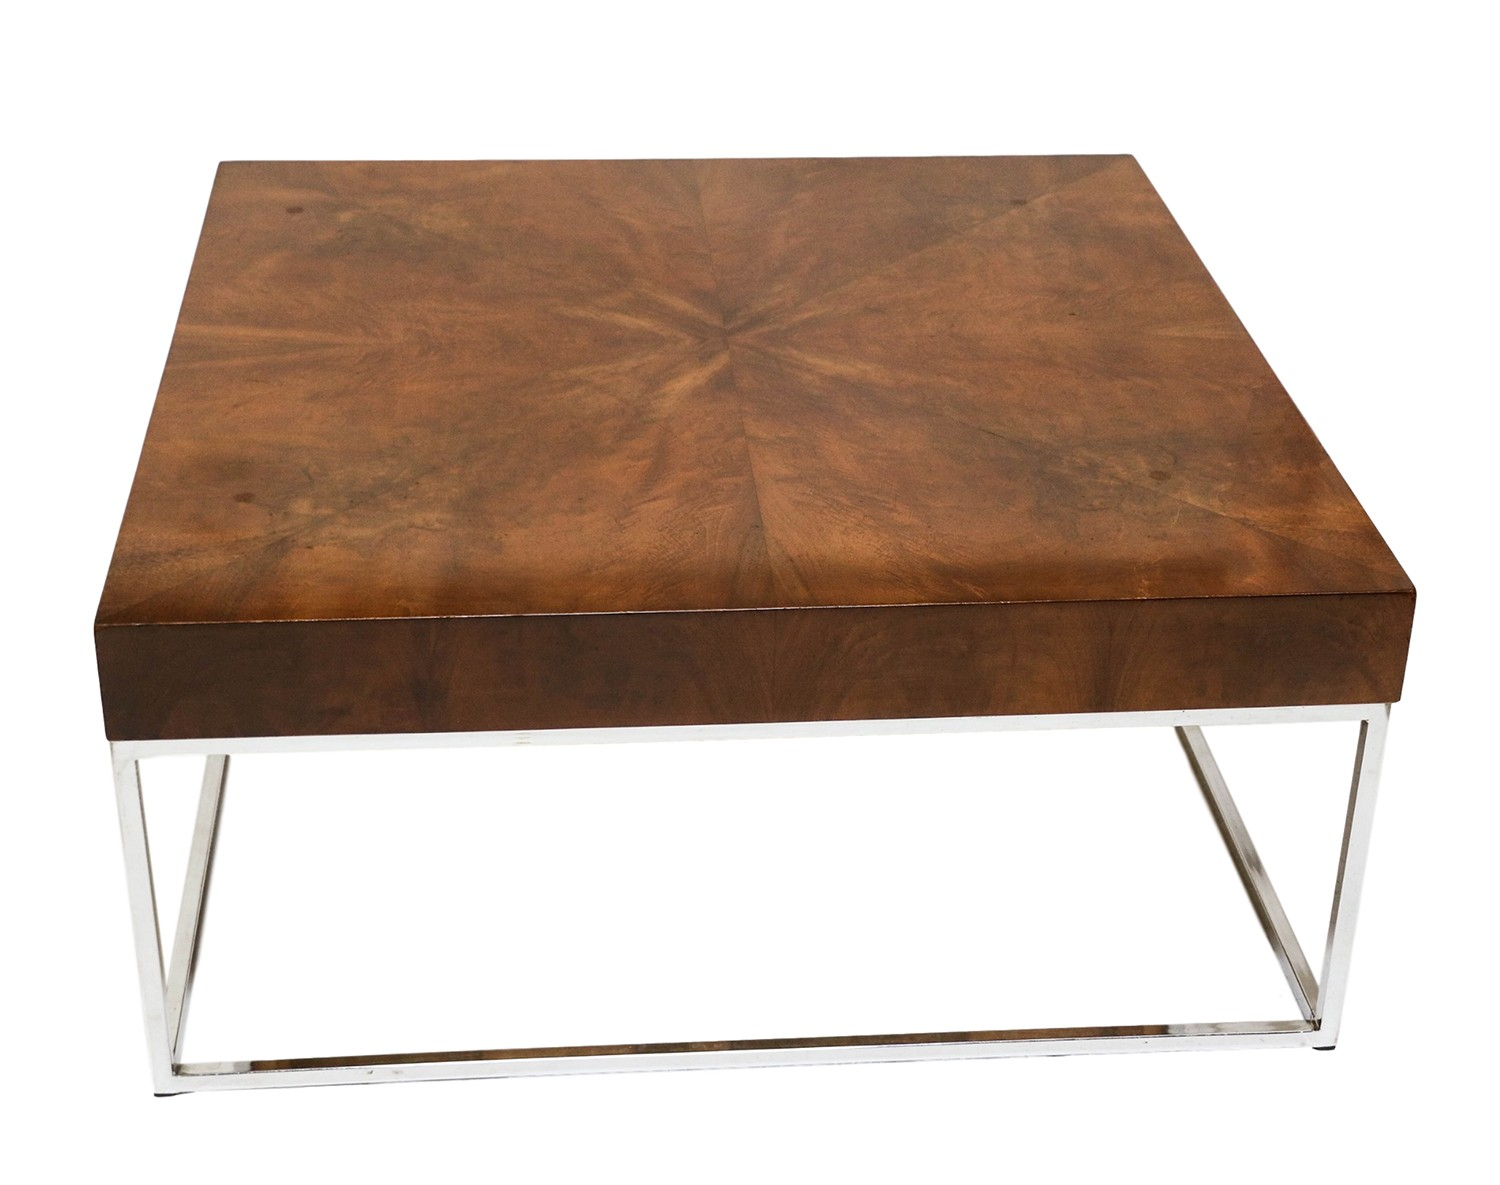 Modern Contemporary Square Coffee Tables Mid Century Modern Walnut Chrome Square Coffee Table